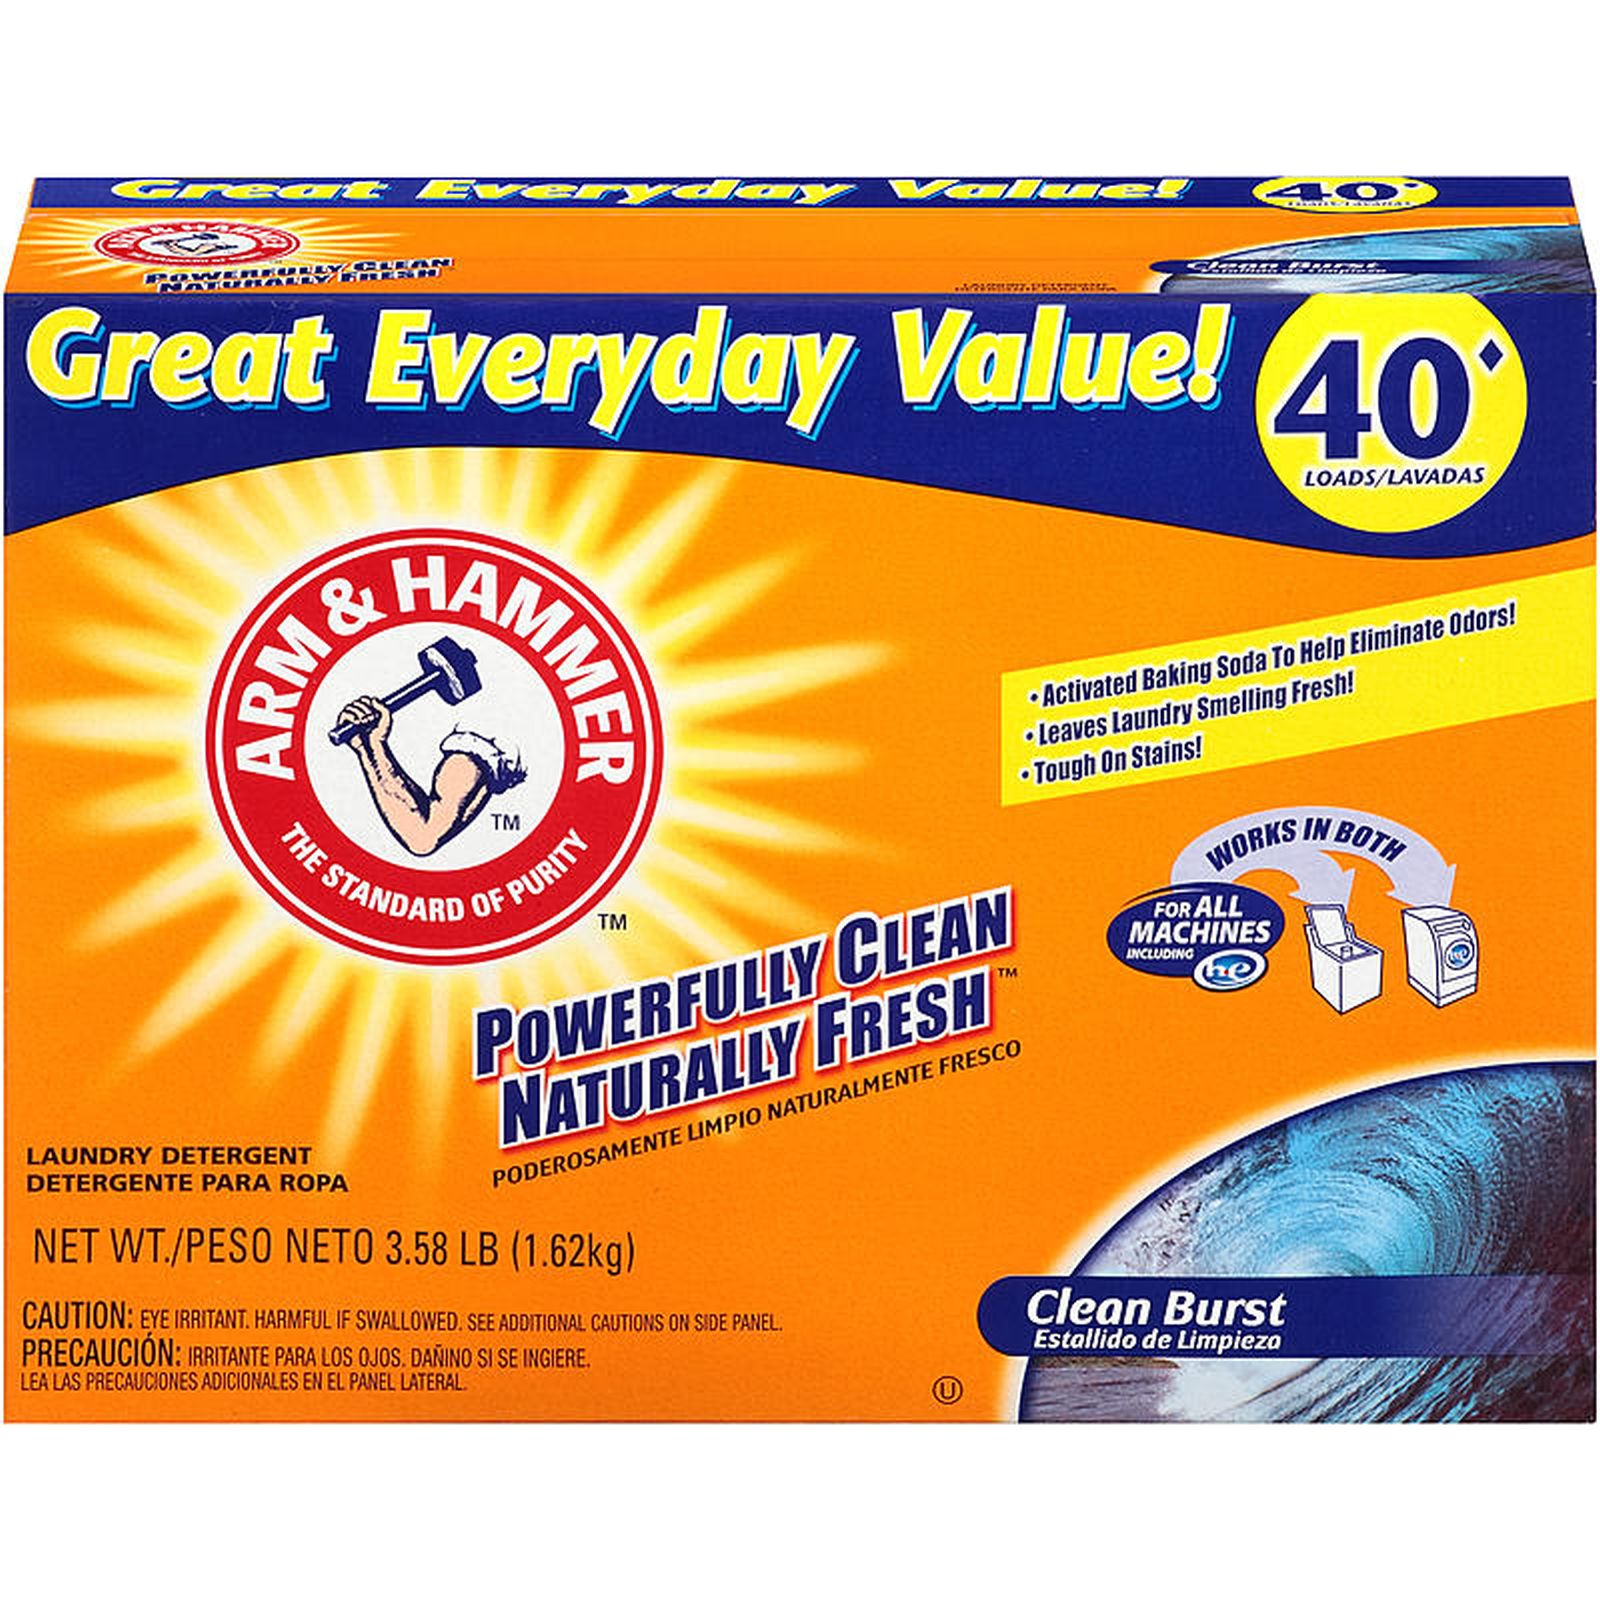 Is arm and hammer powder laundry detergent he - Arm Hammer Clean Burst Powder Laundry Detergent 3 58 Lb 40 Loads Food Grocery Laundry Care High Efficiency Detergents